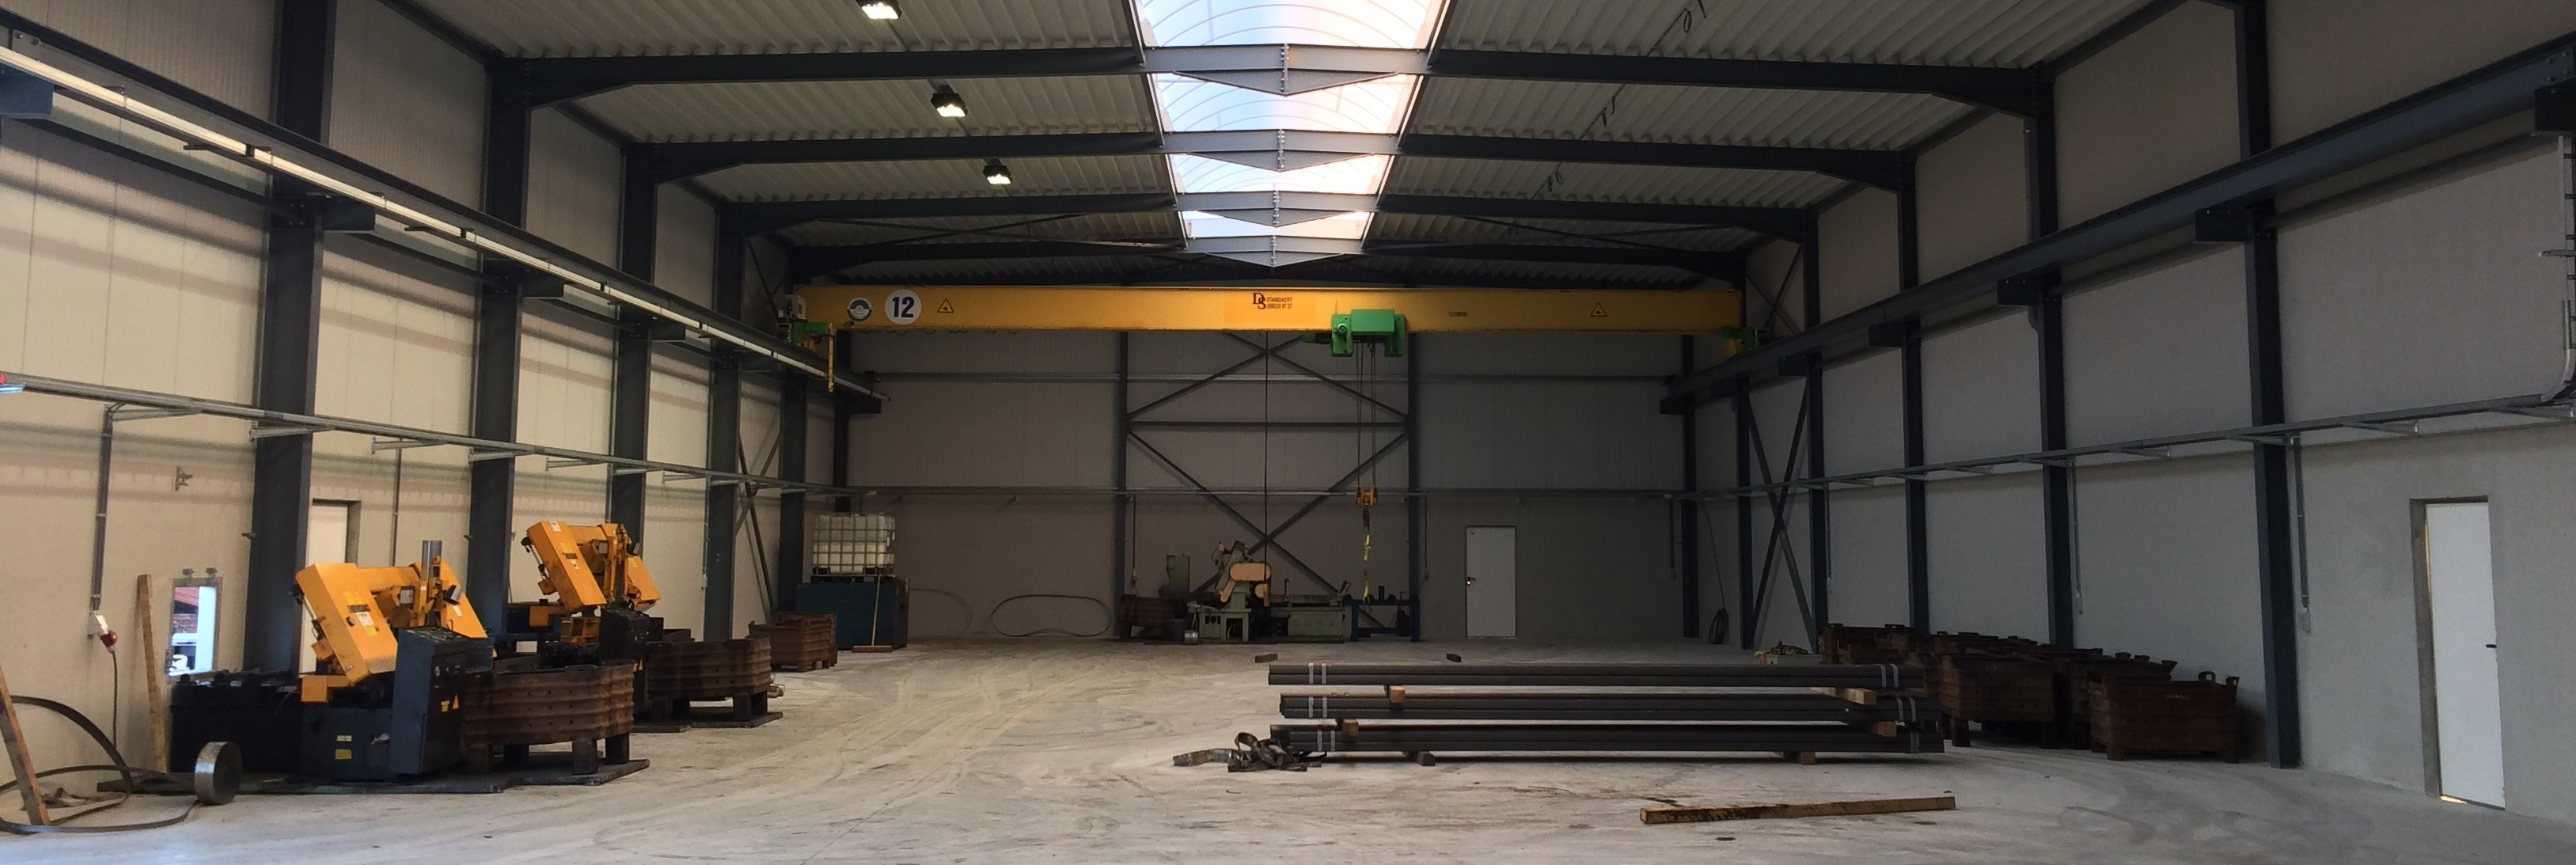 HERTECANT FLANGES IS EXTENDING ITS PRODUCTION FACILITIES :